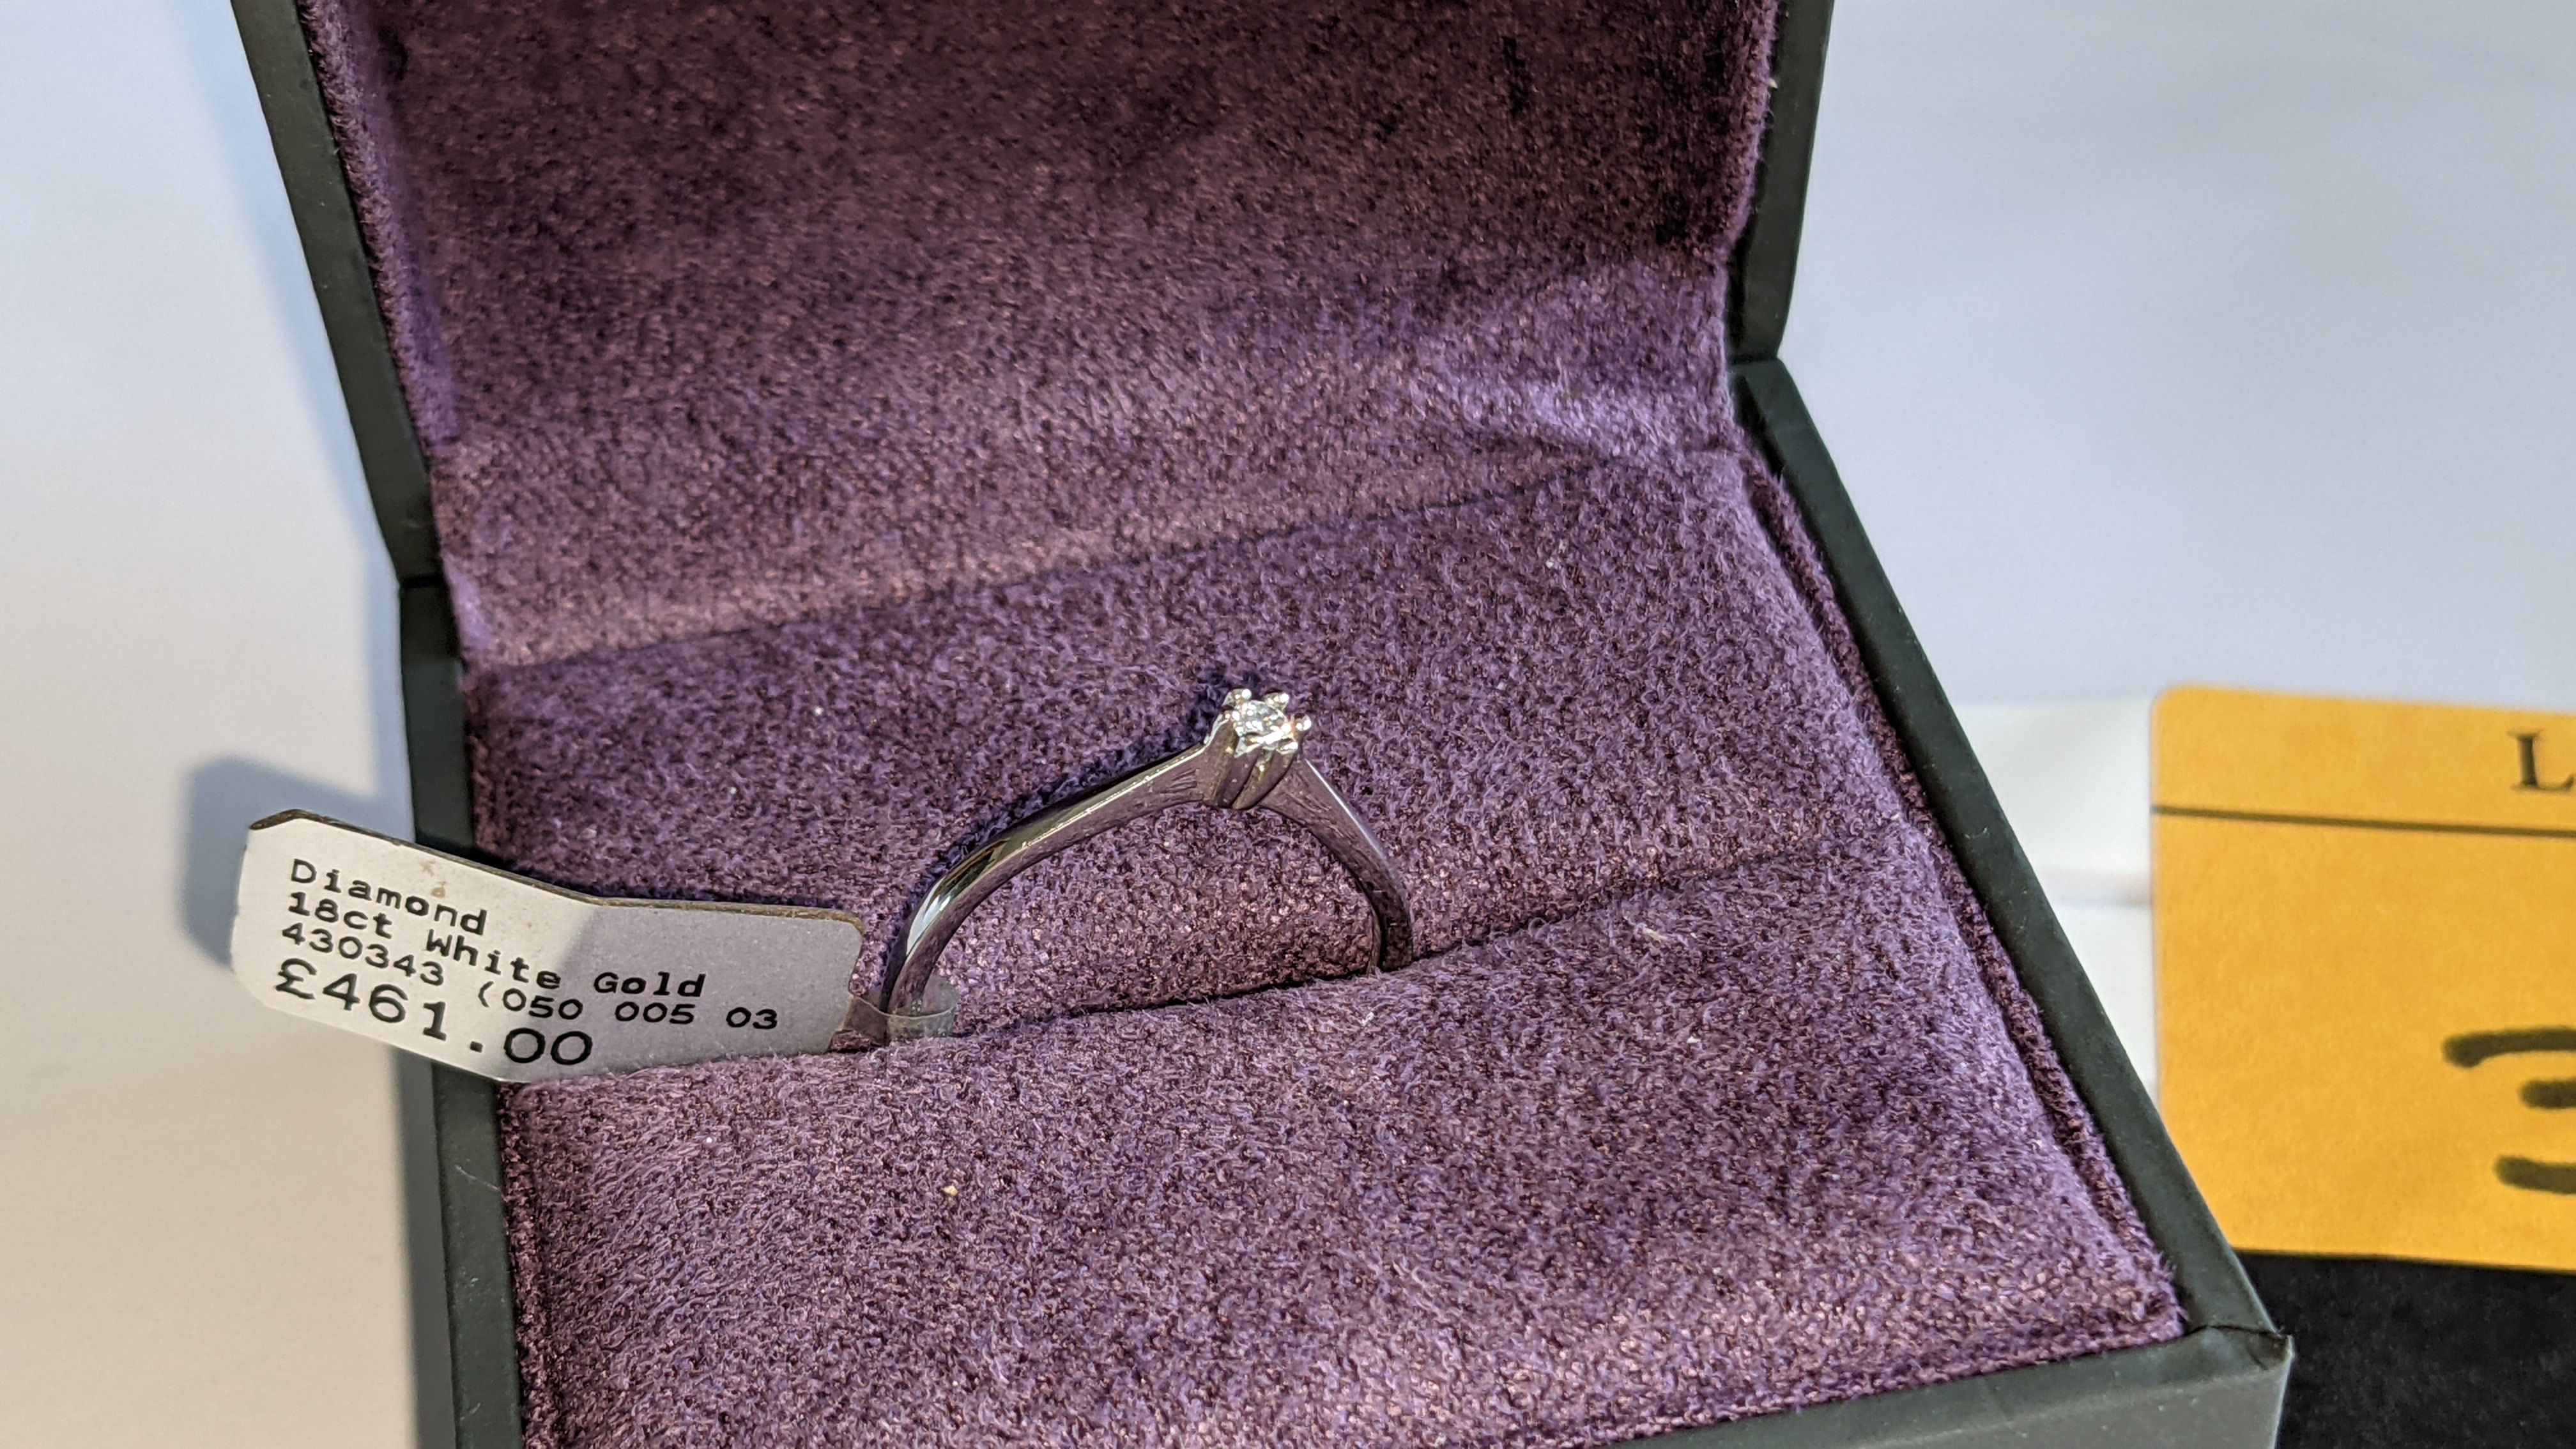 18ct white gold ring with central 0.05ct diamond. RRP £461